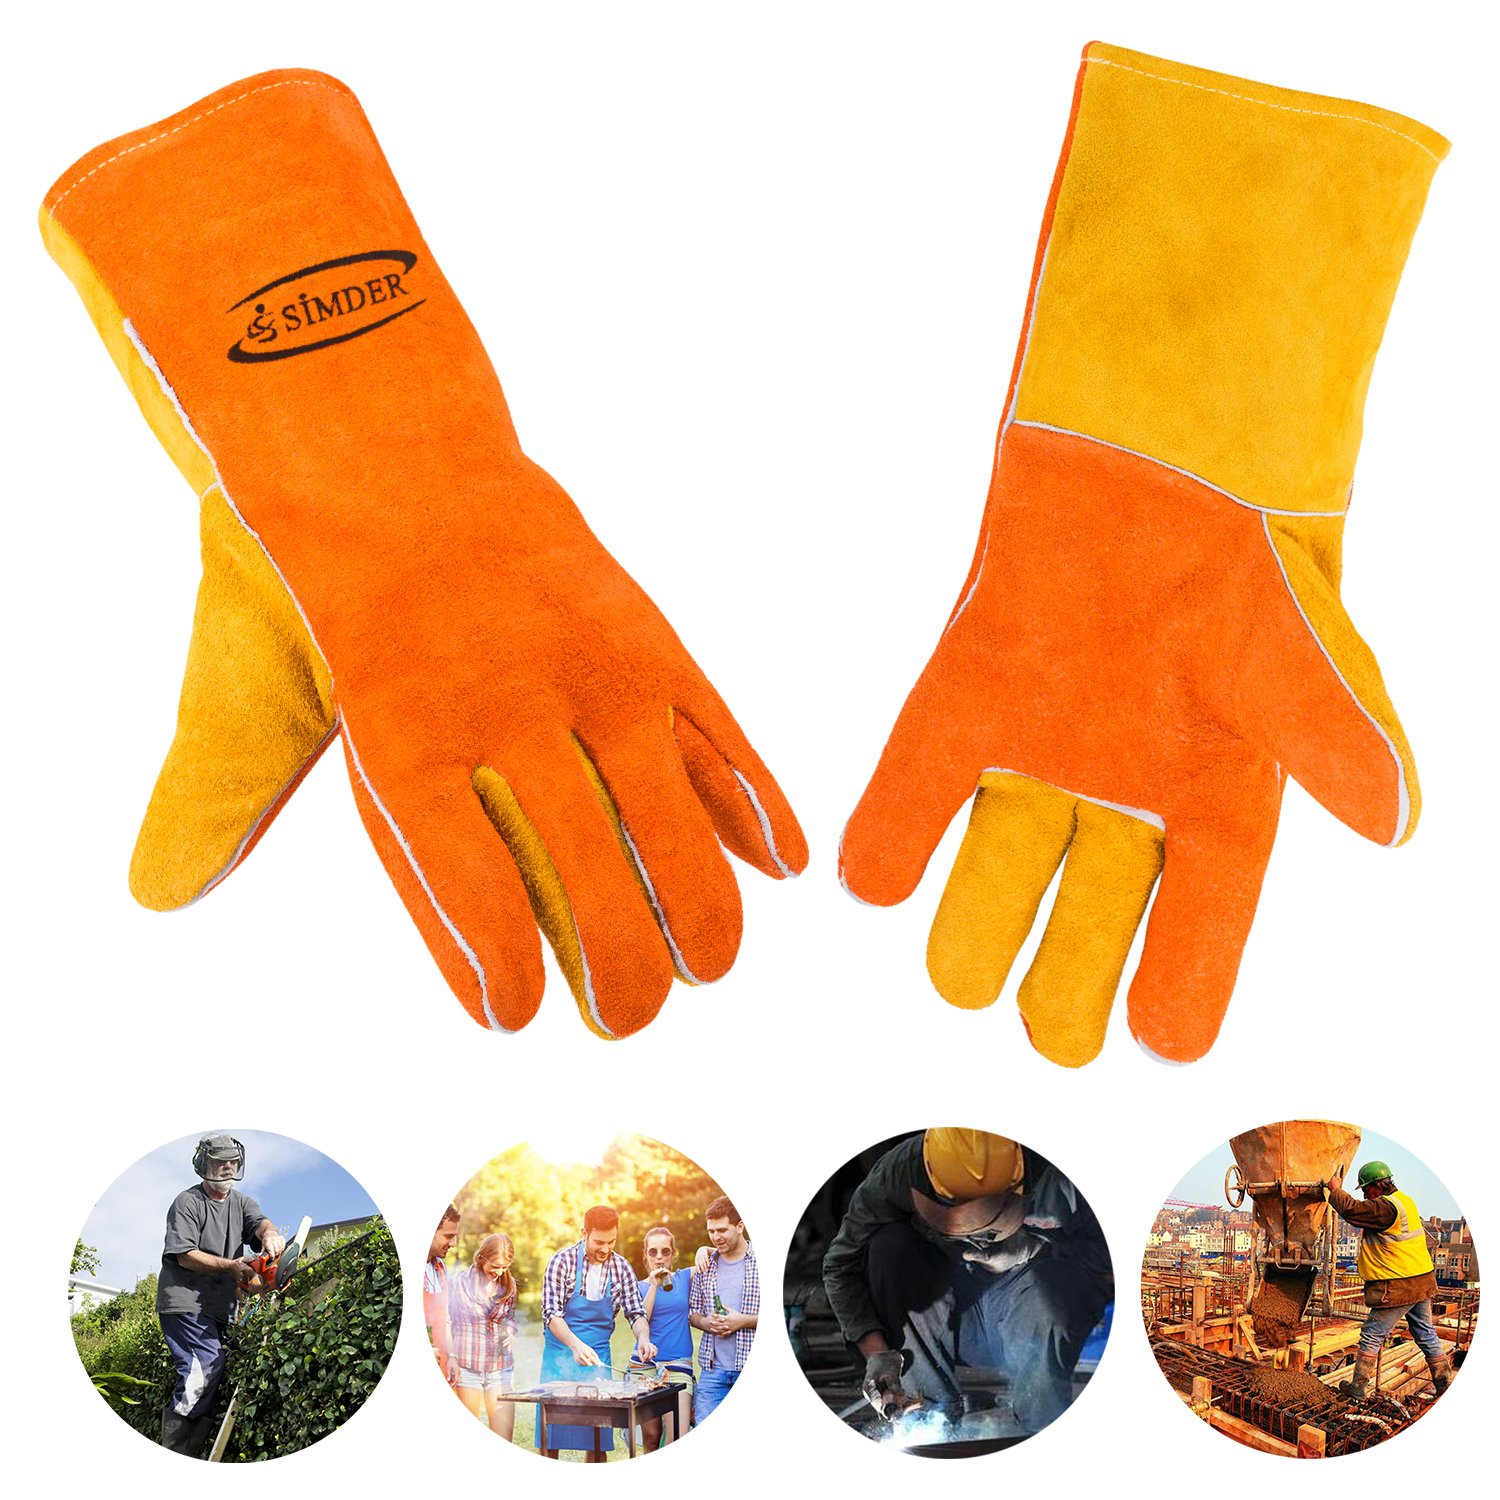 Welding Gloves Heat Resistant Gloves with Kevlar Stitching Leather Work Gloves for Welding Garden BBQ Grill Oven Cooking fireplace gloves fireproof snake bite gloves 14 inches Long